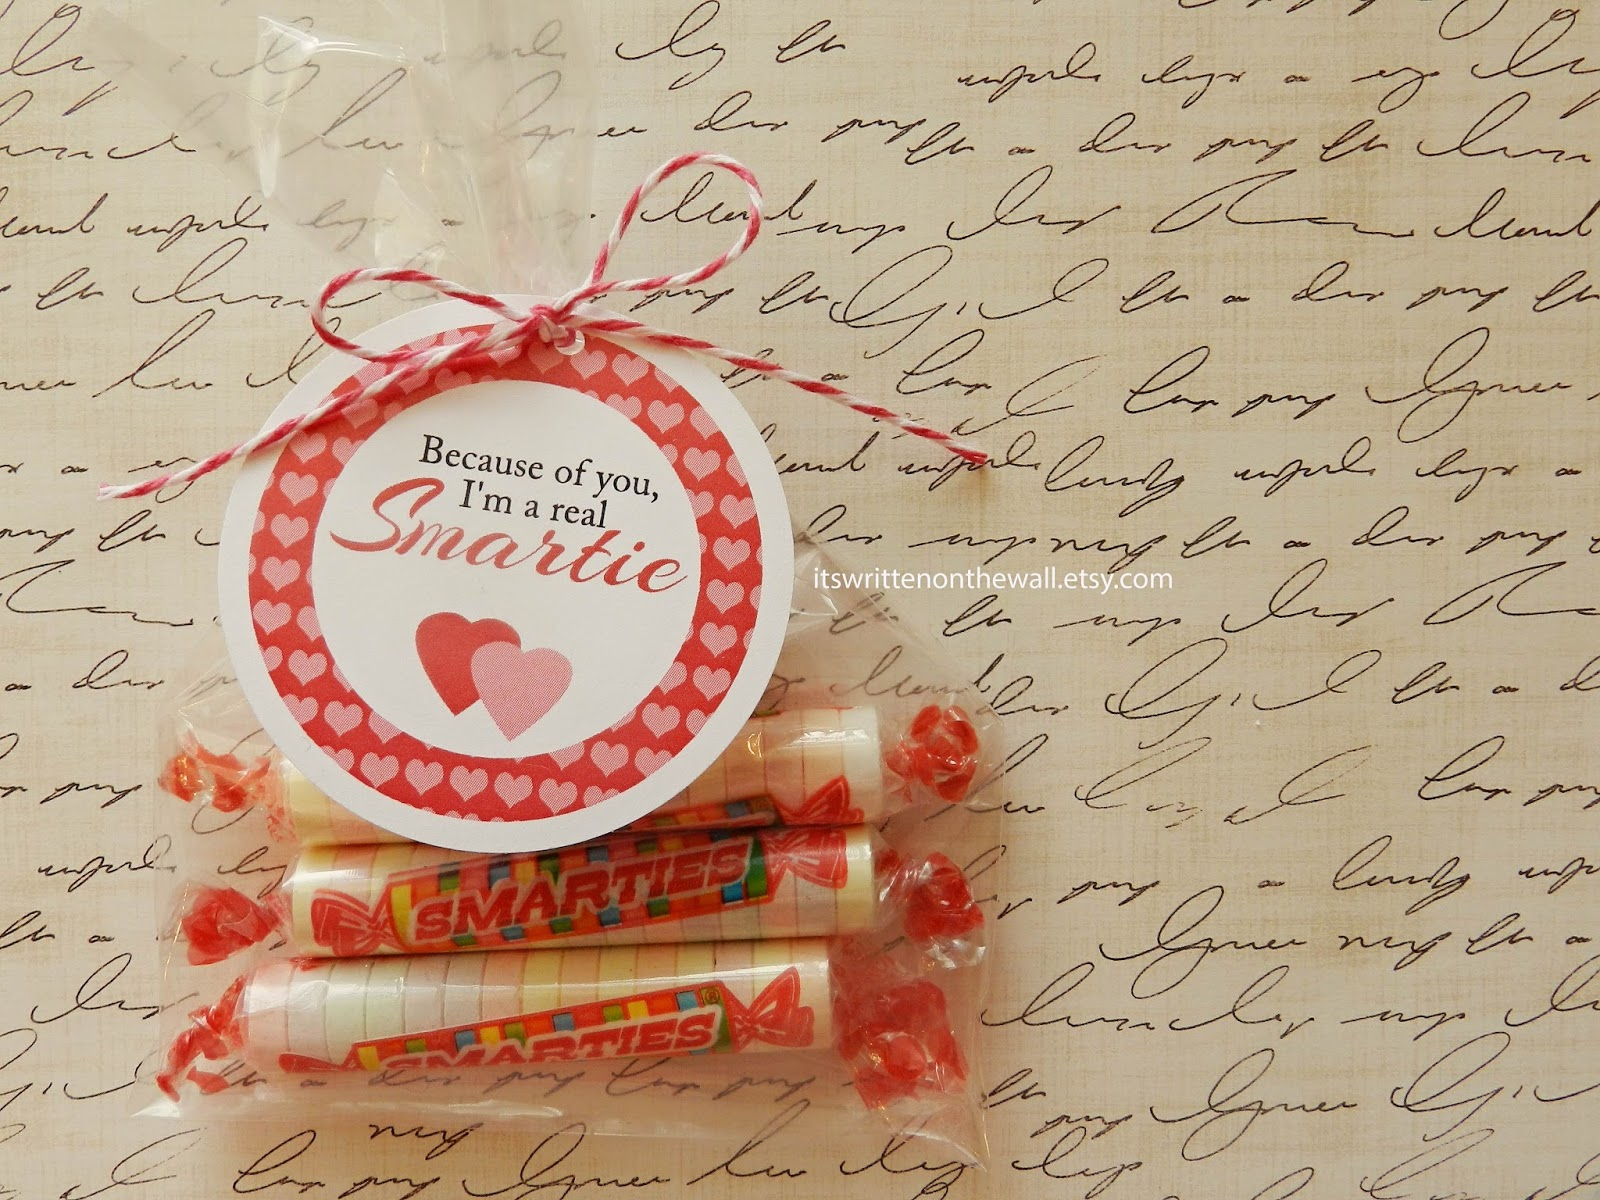 """It's Written on the Wall: """"Because of you, I'm a Smartie ..."""